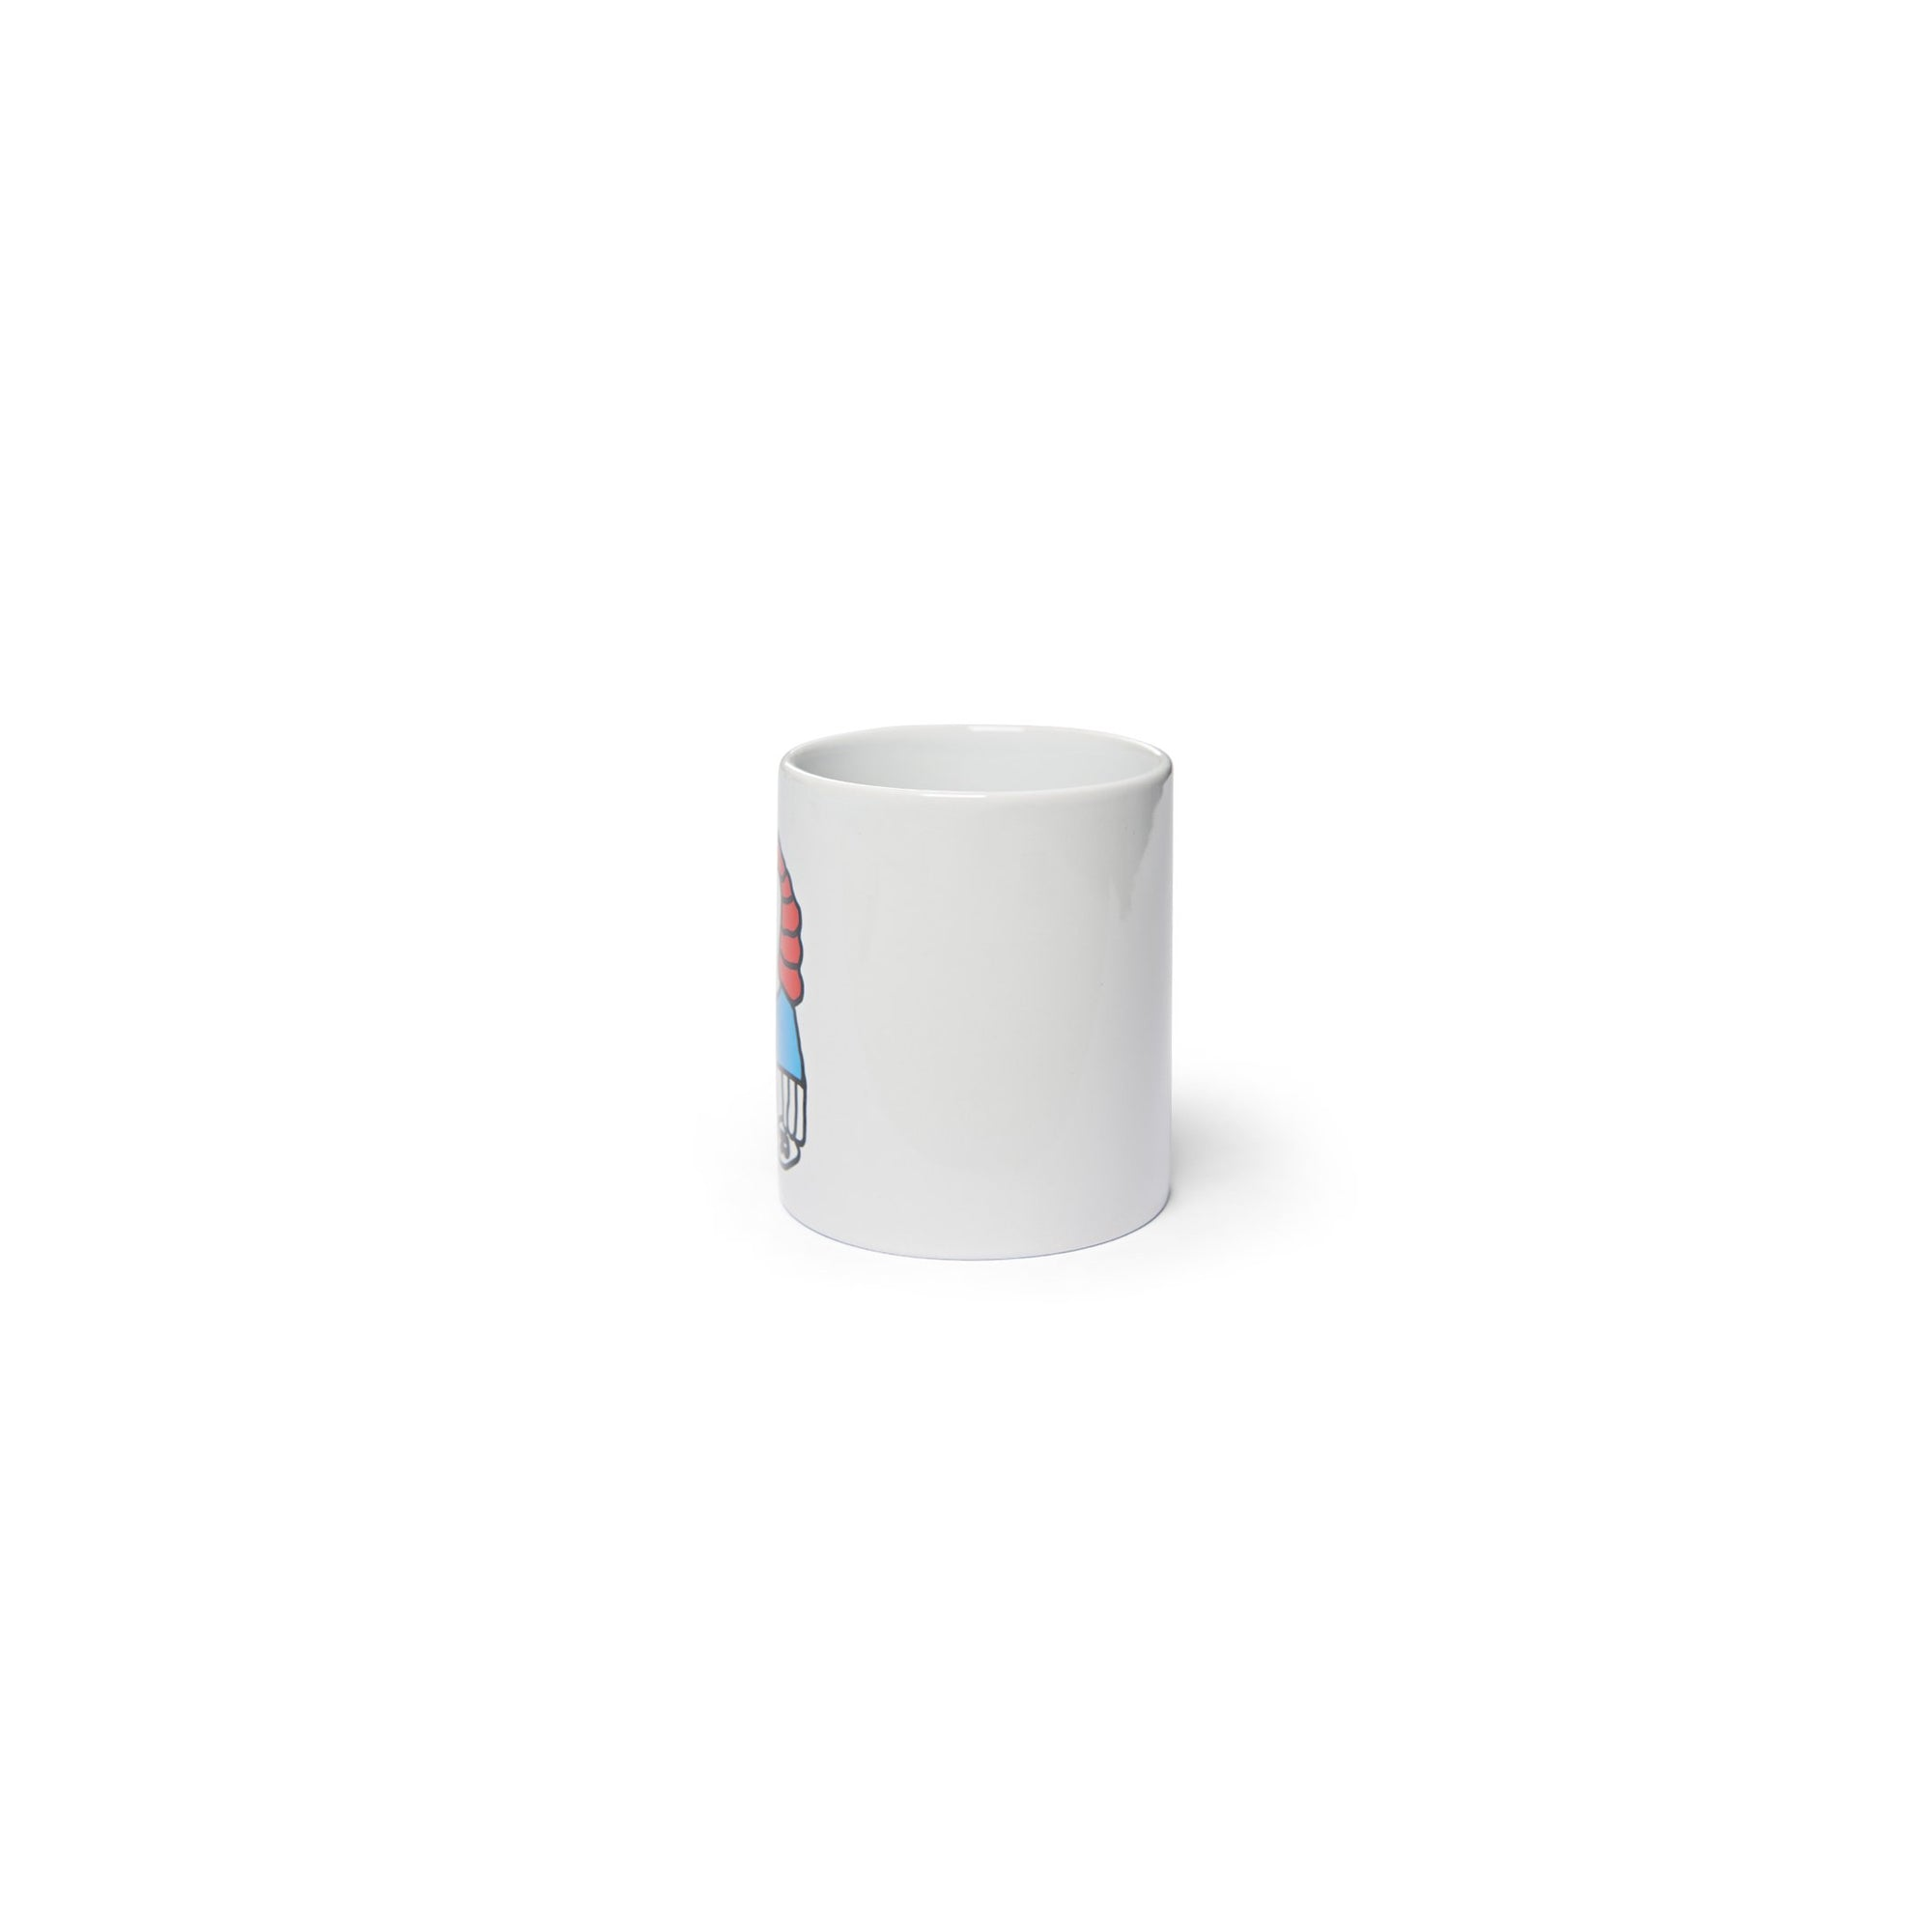 Polar Mug Product Photo #2